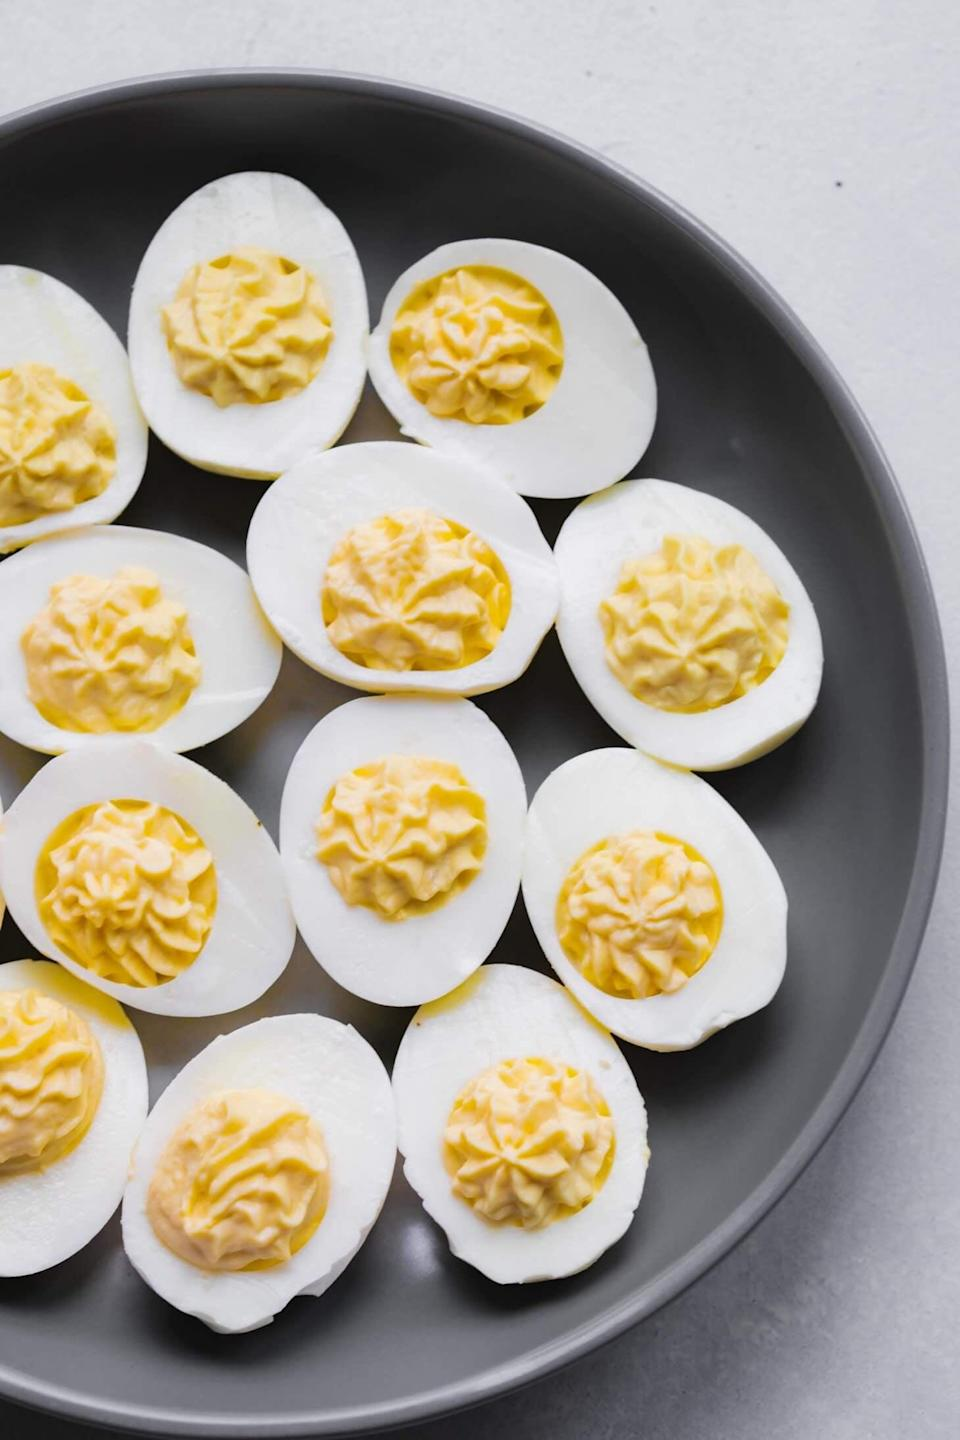 "<p>This recipe delivers the tastiest, fastest, and easiest deviled eggs of them all. Just throw eggs in an Instant Pot and in less than 30 minutes, you'll have the side dish of your dreams. Cook up as many as you please, and enjoy a light appetizer before the main meal.</p> <p><strong>Get the recipe</strong>: <a href=""https://www.platingsandpairings.com/instant-pot-deviled-eggs-easy-peel/"" class=""link rapid-noclick-resp"" rel=""nofollow noopener"" target=""_blank"" data-ylk=""slk:Instant Pot deviled eggs"">Instant Pot deviled eggs</a></p>"